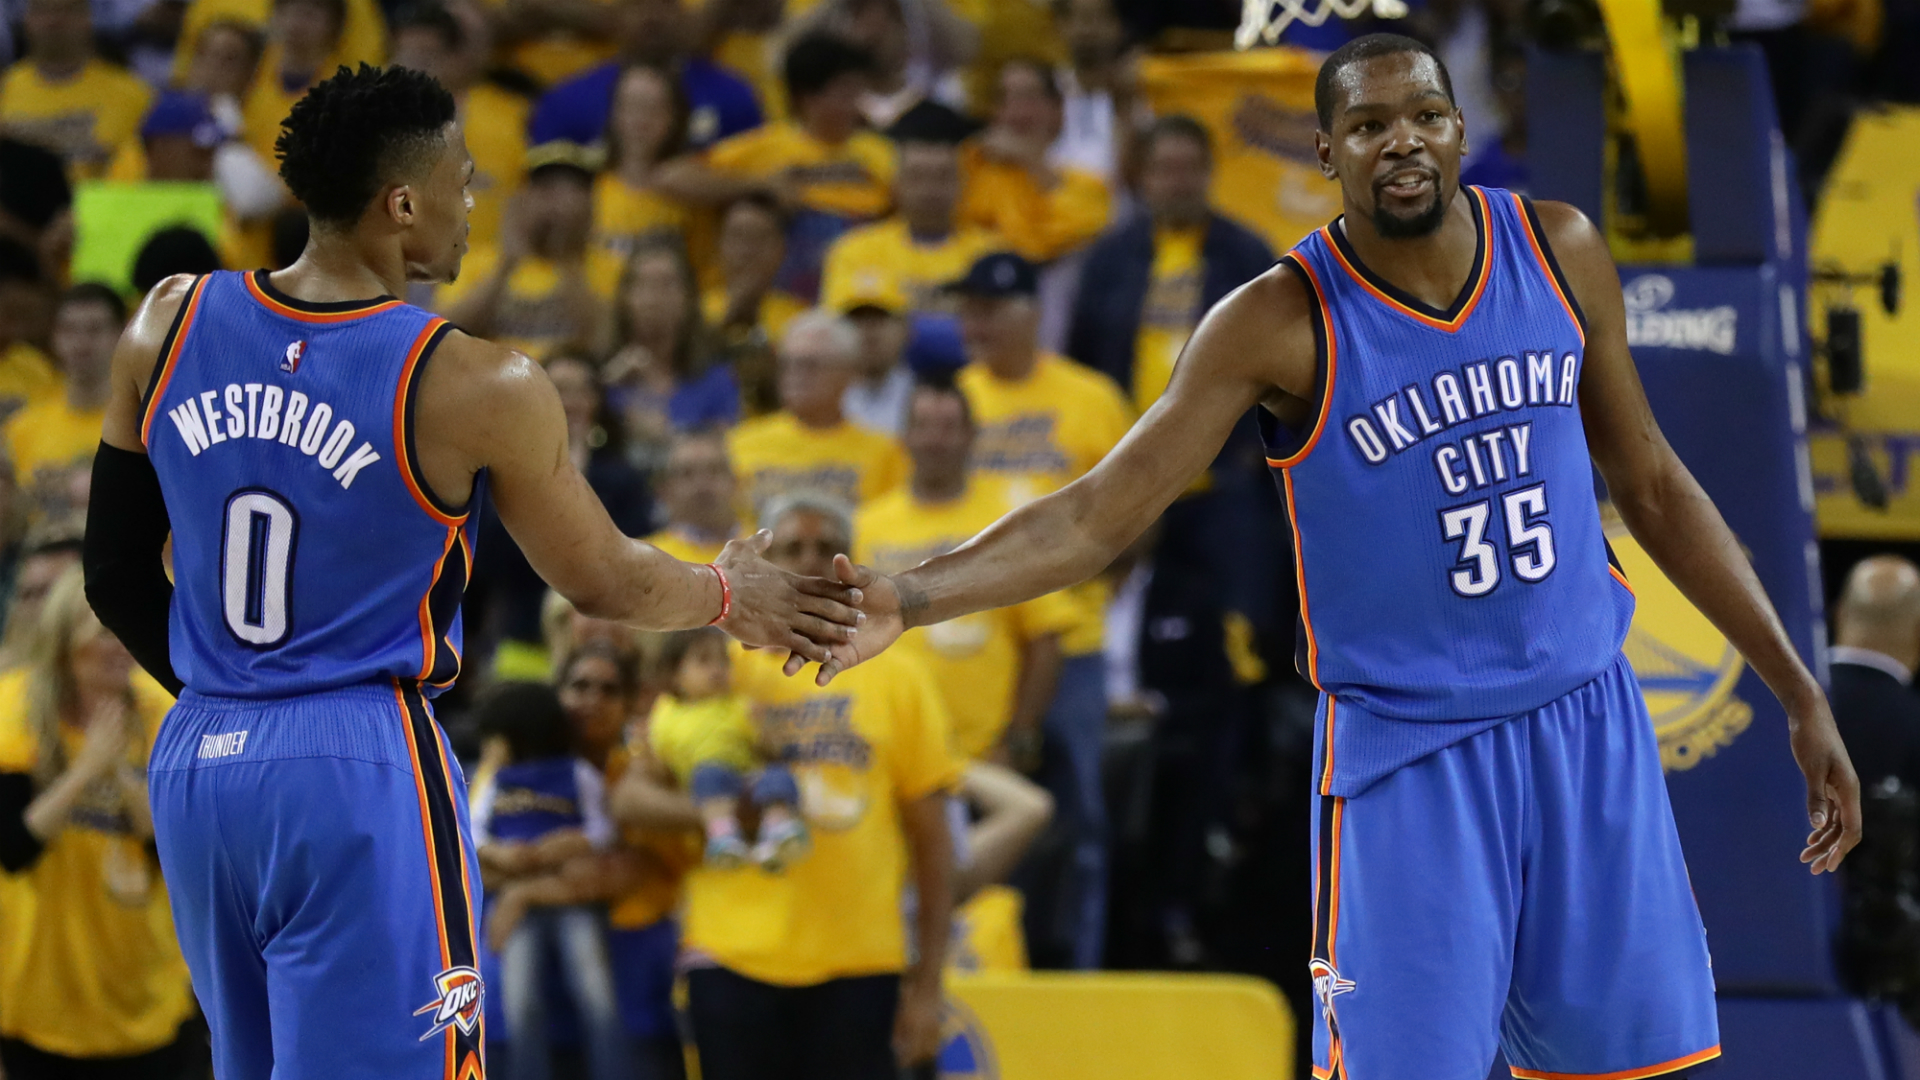 Kevin-Durant-Russell-Westbrook-Getty-FTR-070416